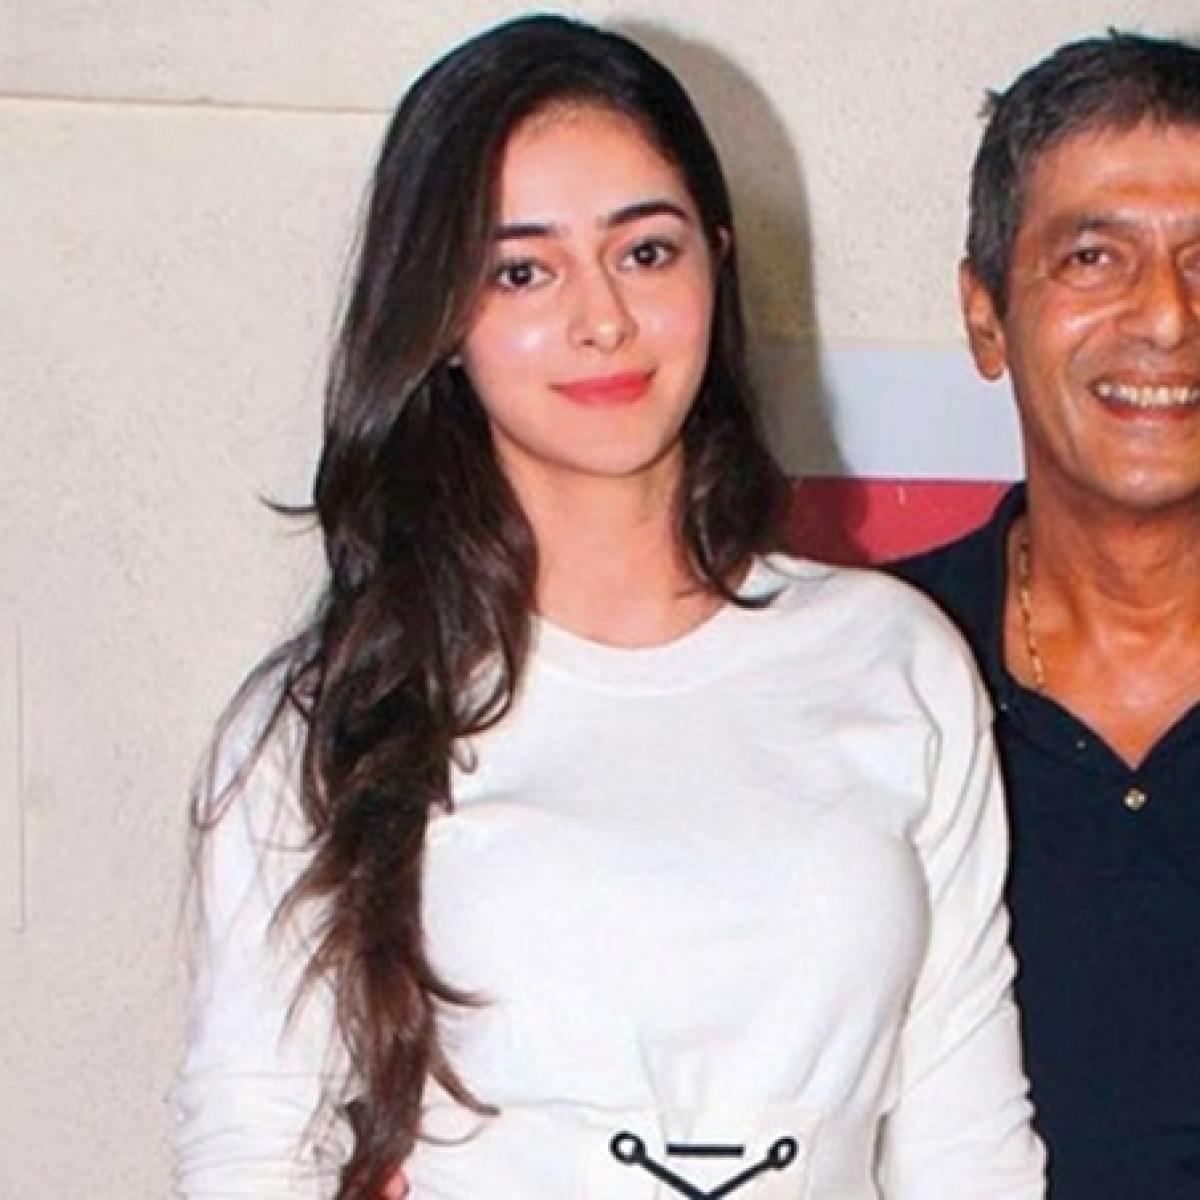 Chunky Pandey says daughter Ananya Panday should stop taking his name after massive trolling